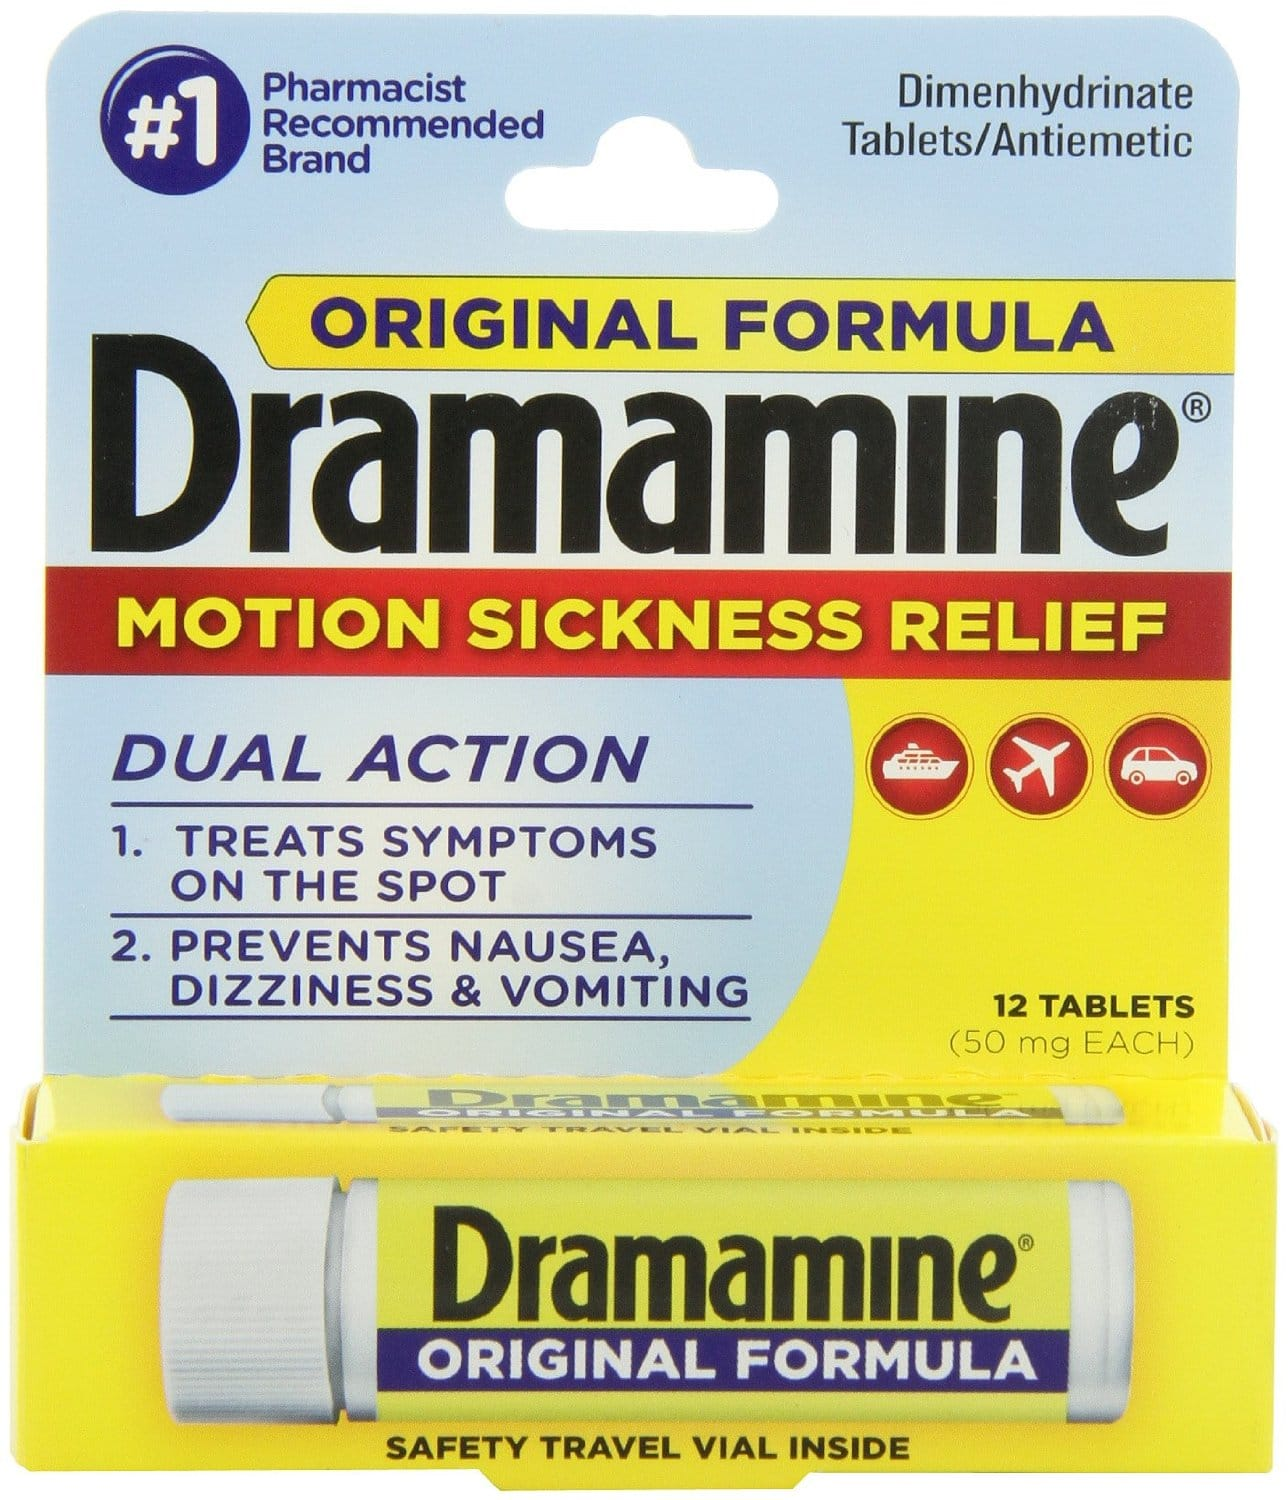 Dramamine Motion Sickness Relief Original Formula, 50 mg, 12 Count $3.22 or $2.88 Amazon s&s